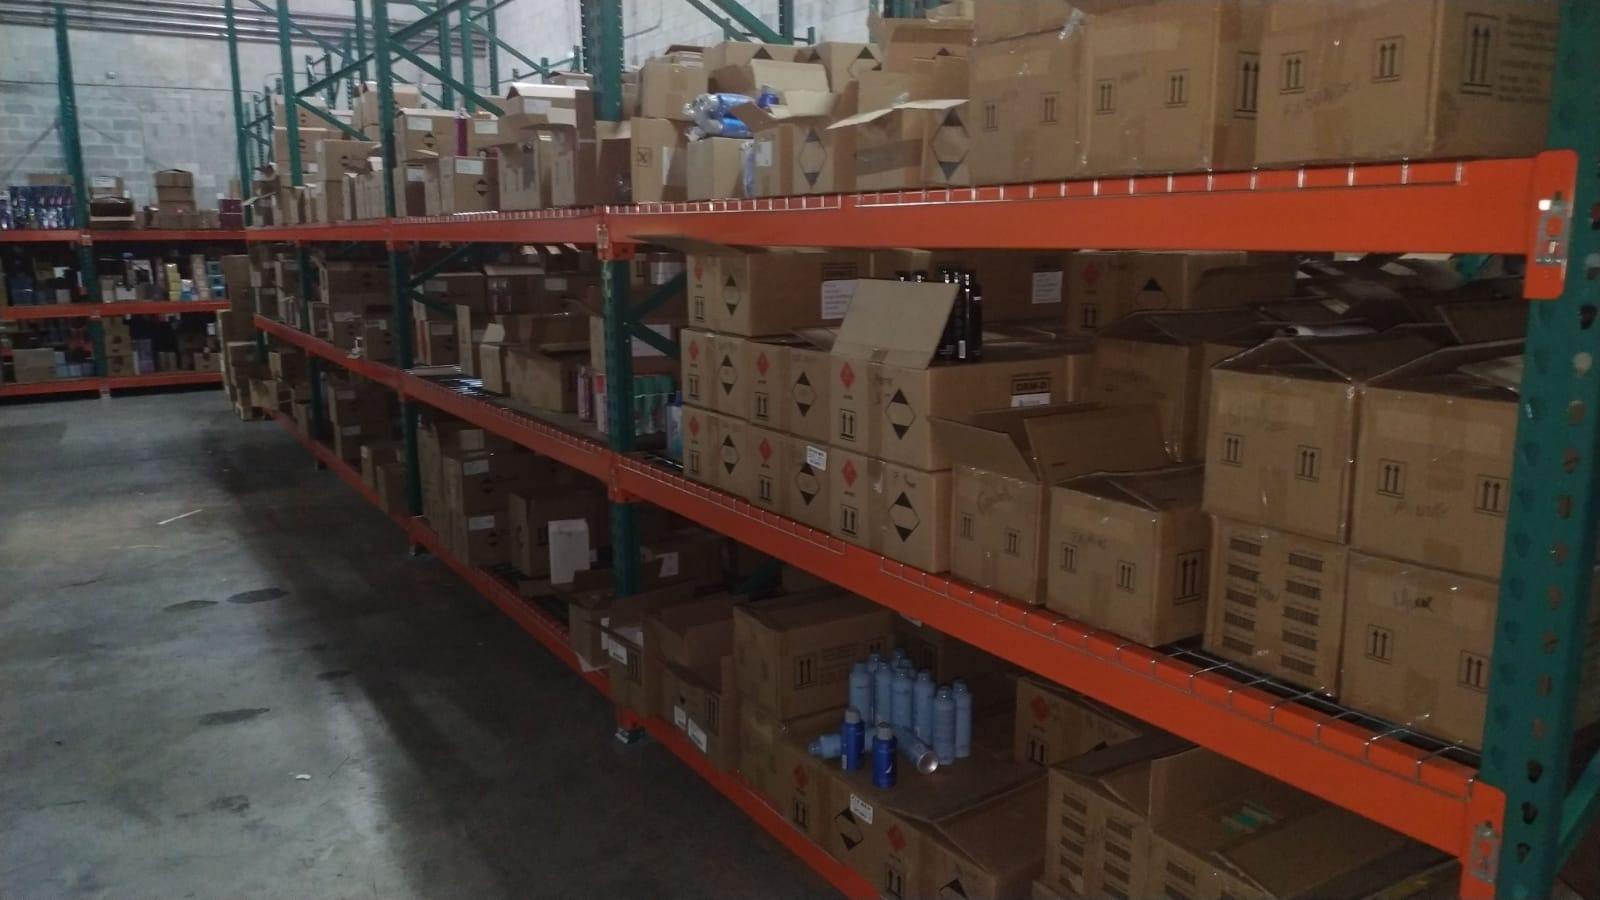 warehouse-image-8.jpg